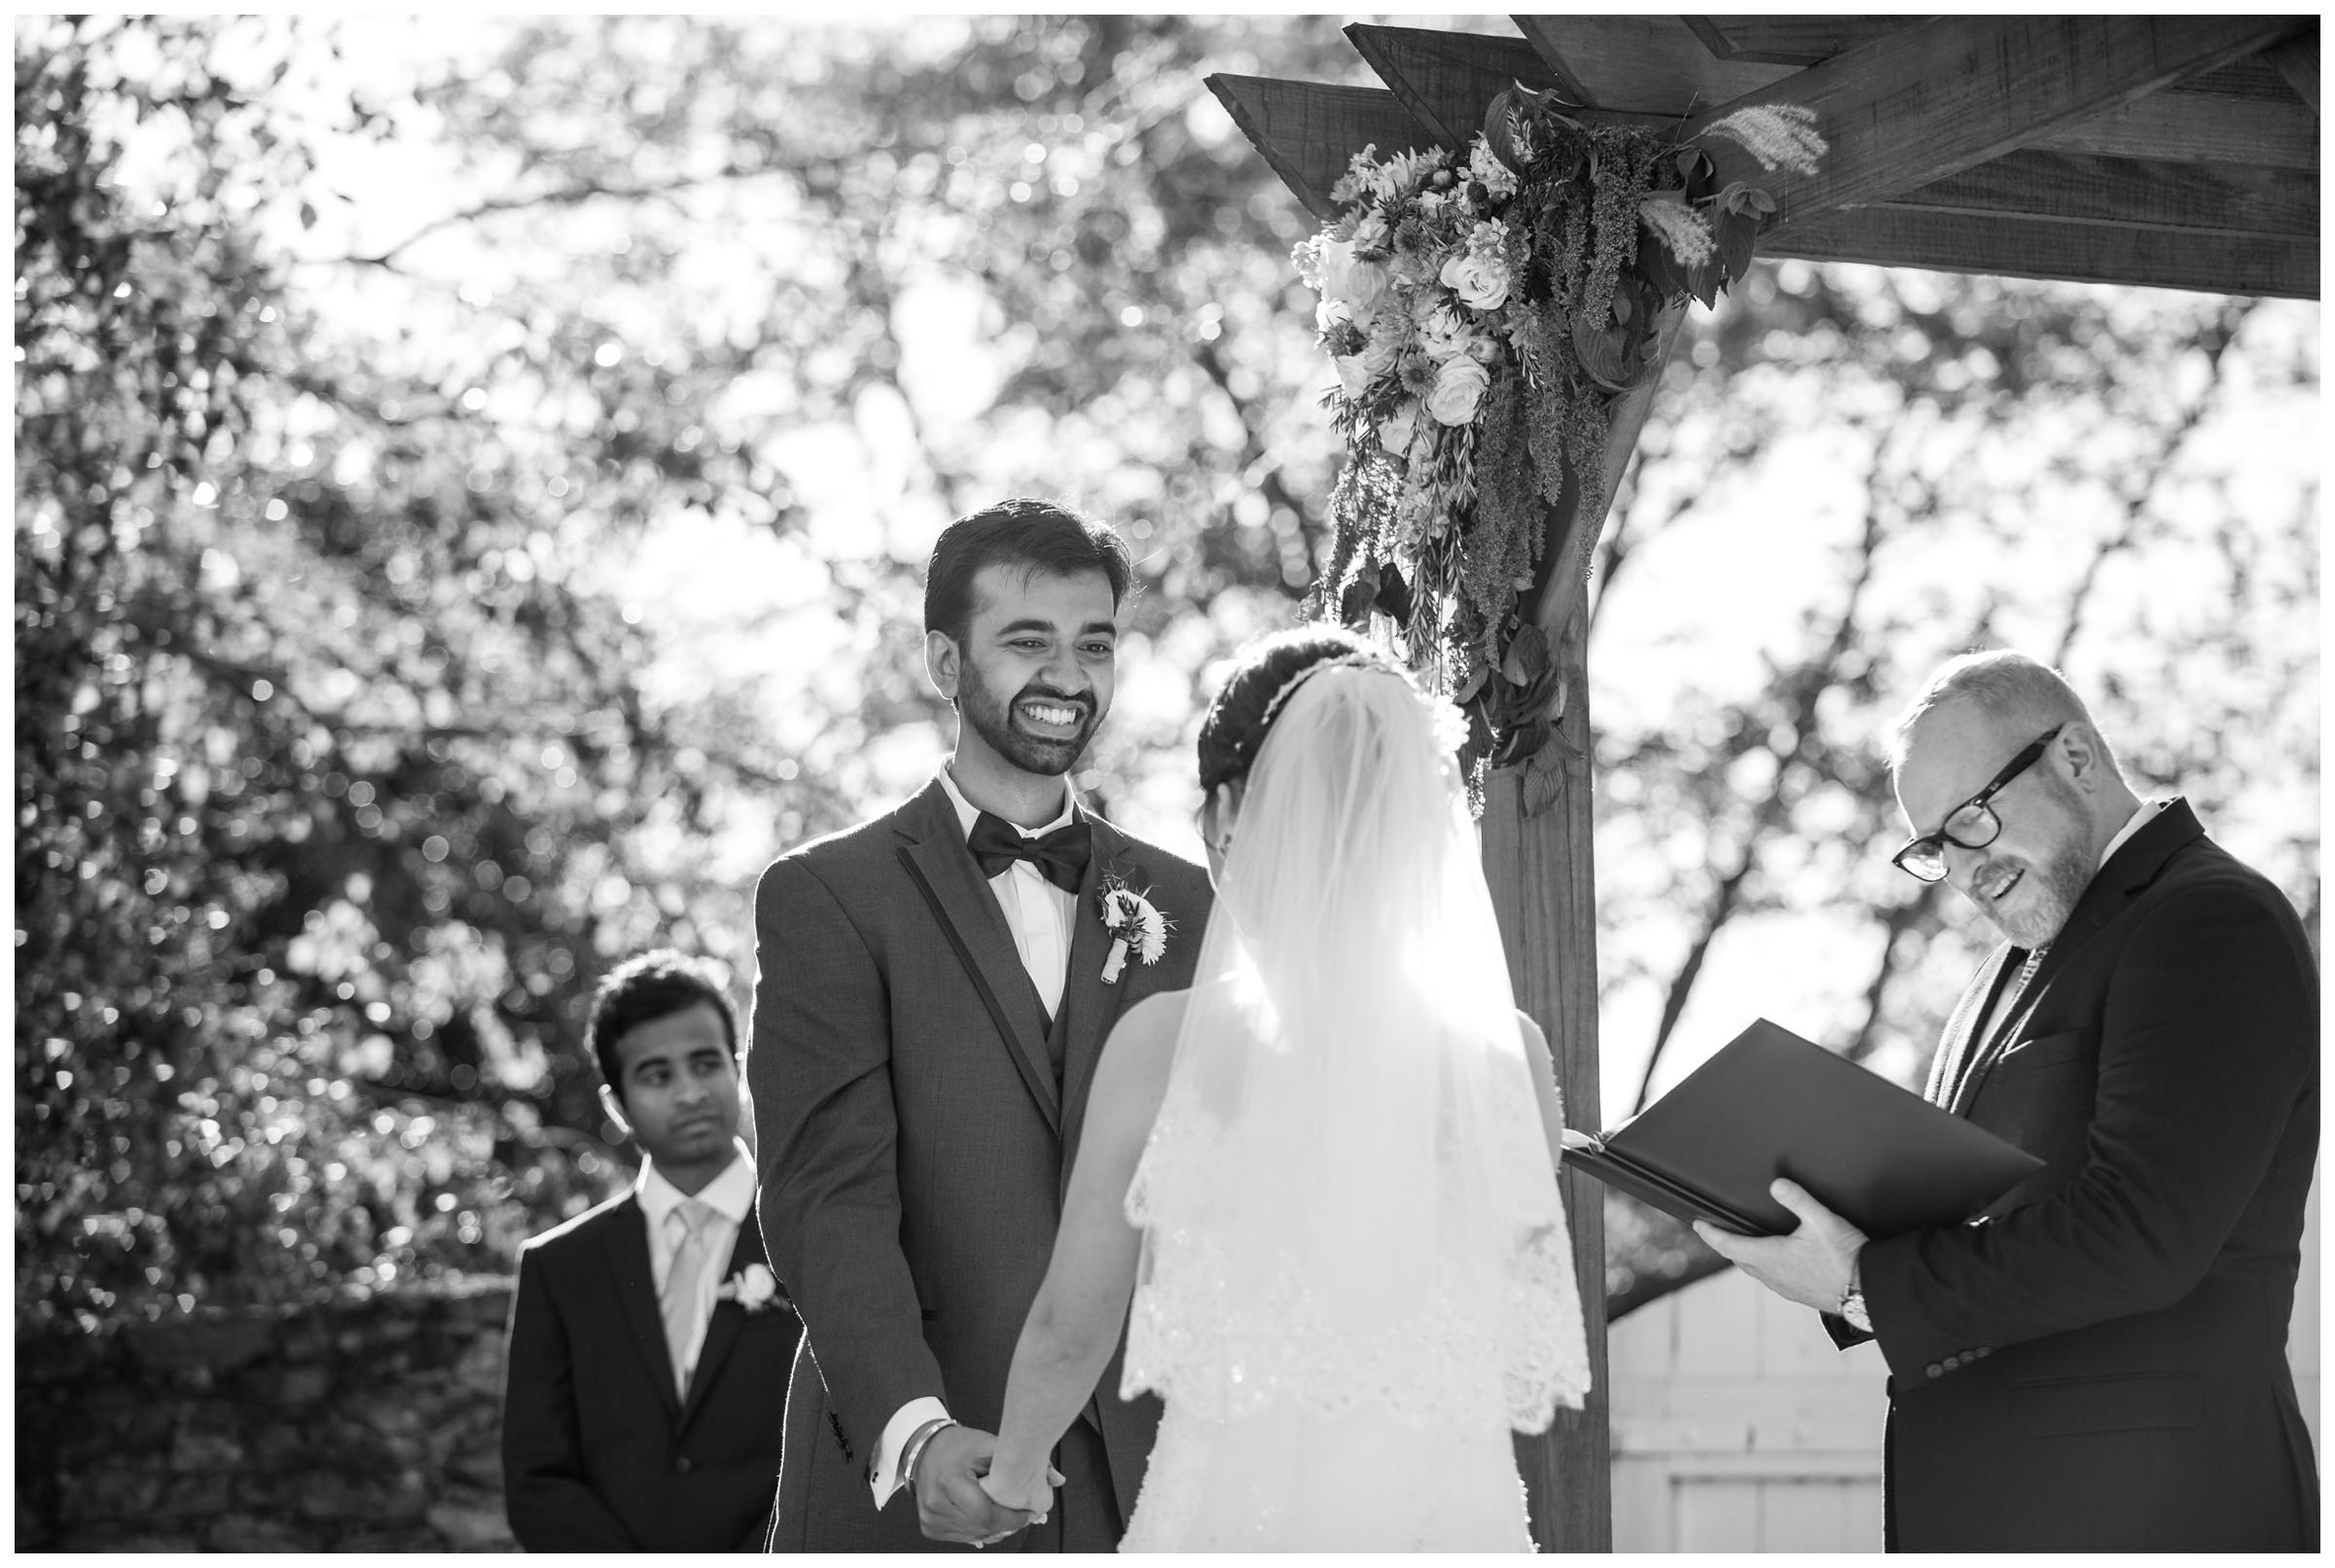 Groom smiling during rustic outdoor wedding ceremony.